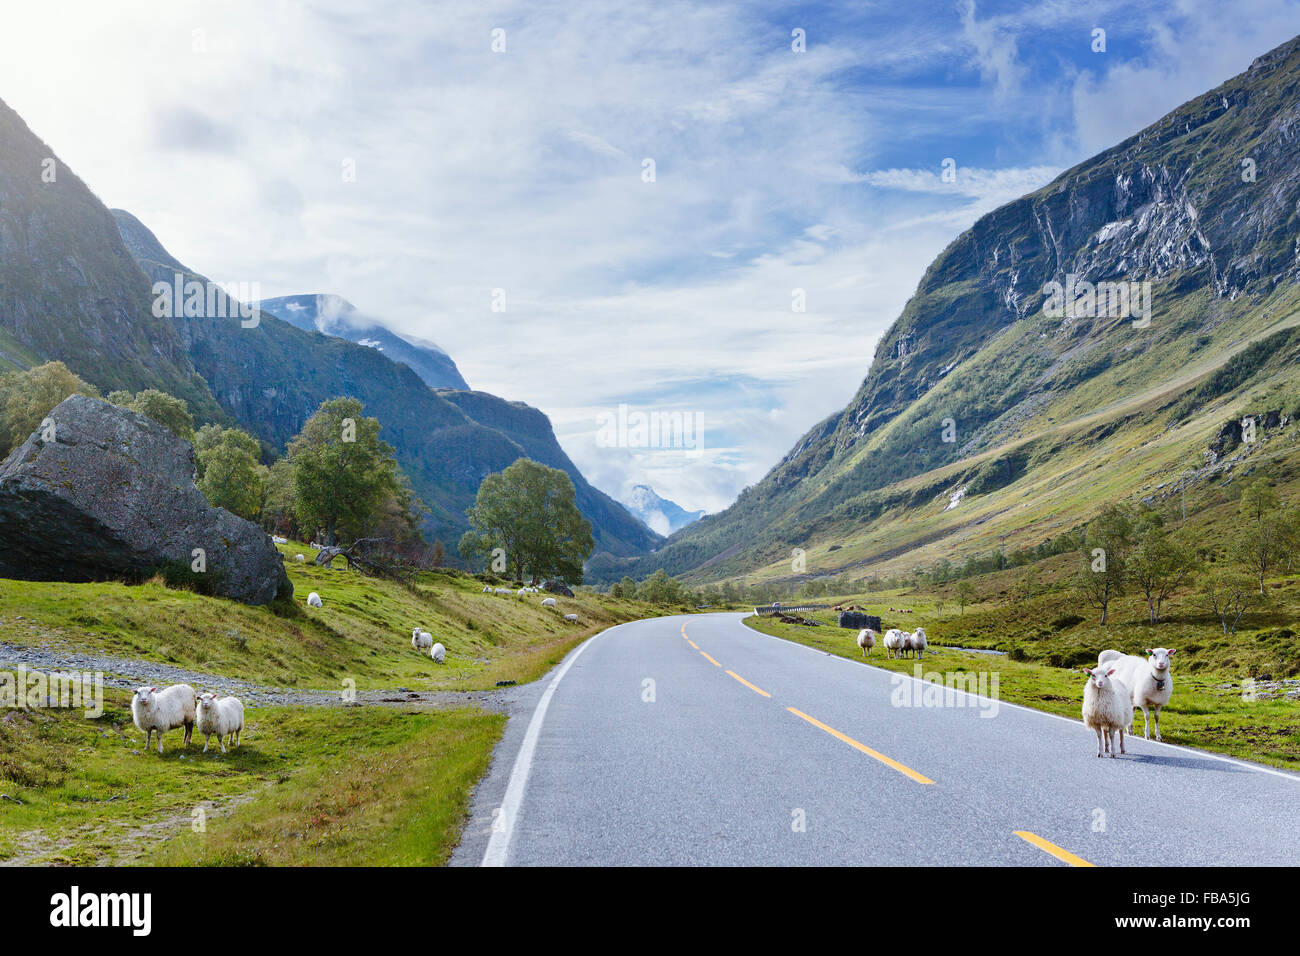 Norway, More og Romsdal, Sunnmore, View of sheep by road in mountains - Stock Image